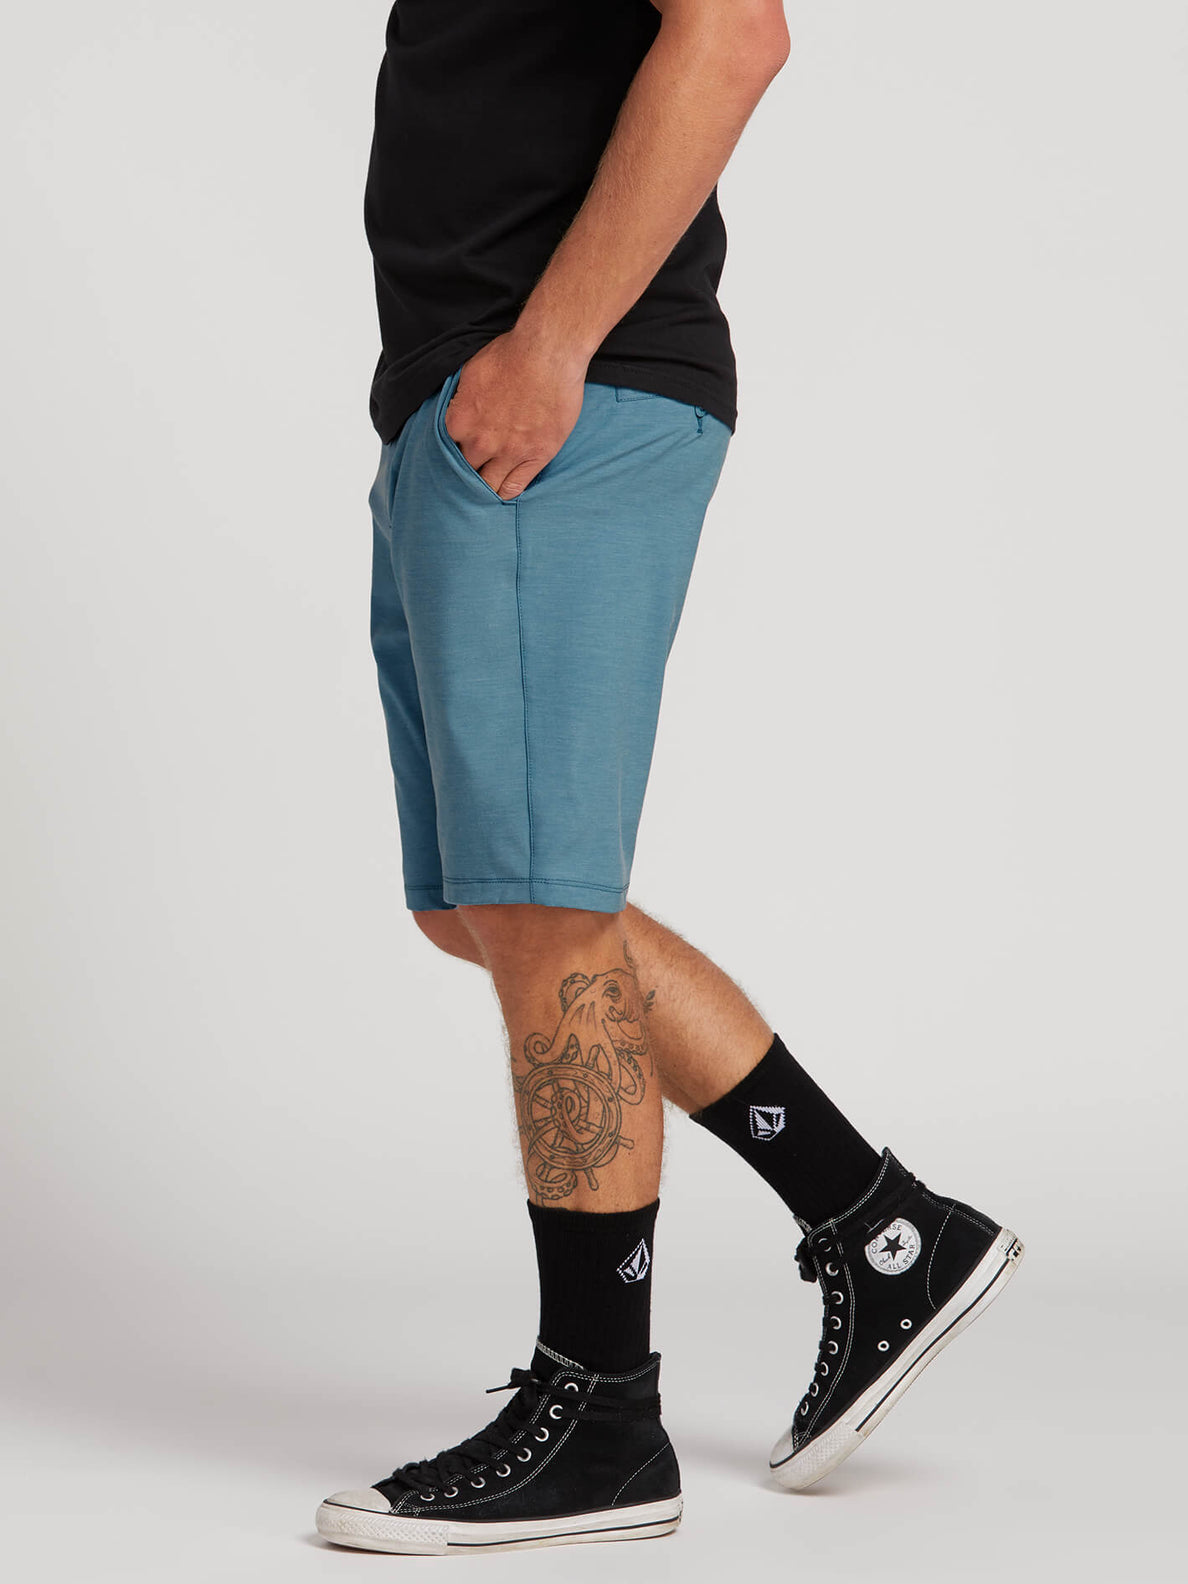 Frickin Surf N' Turf Static Hybrid Shorts In Vintage Blue, Alternate View